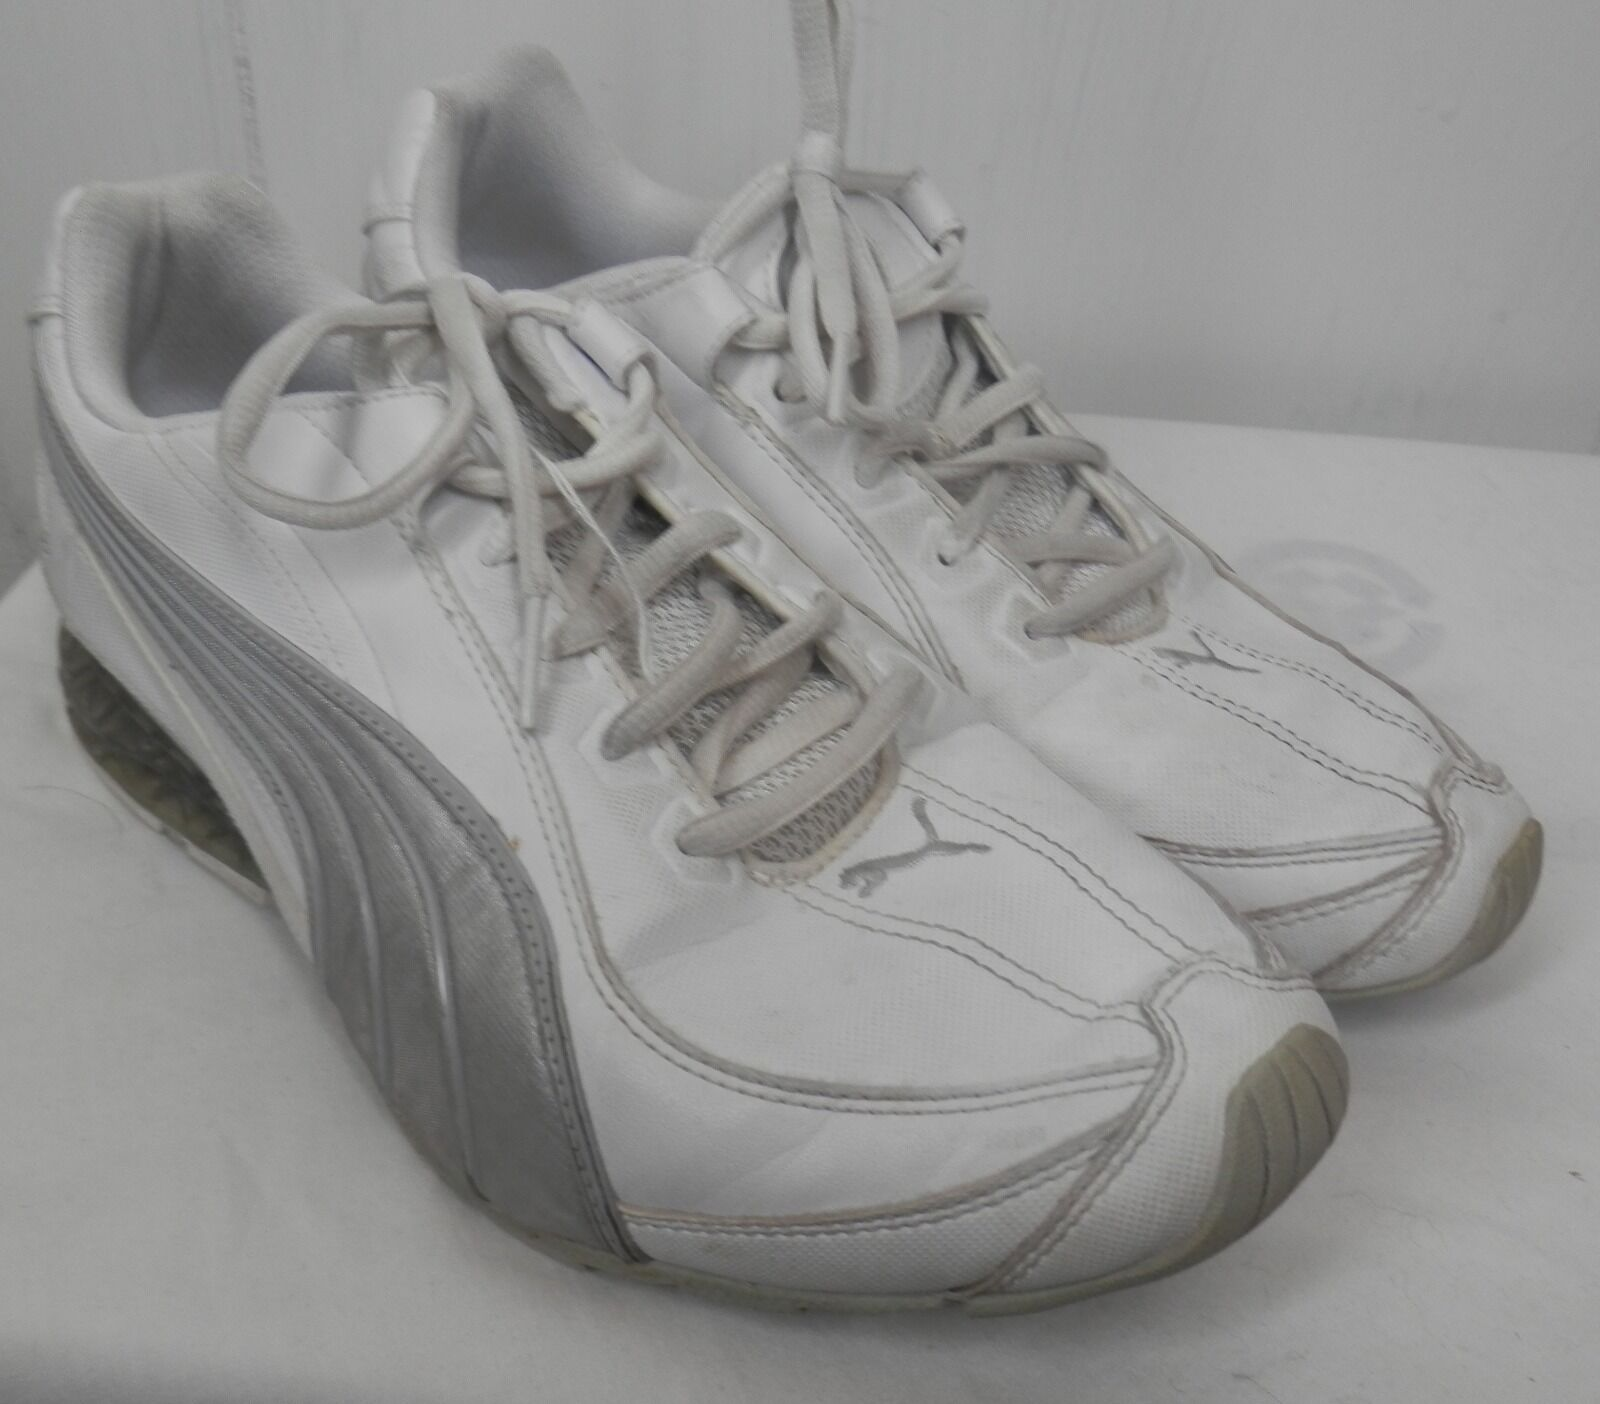 Puma MENS SHOES CELL CERAE white gray Shoes sneakers size 8 Comfortable and good-looking